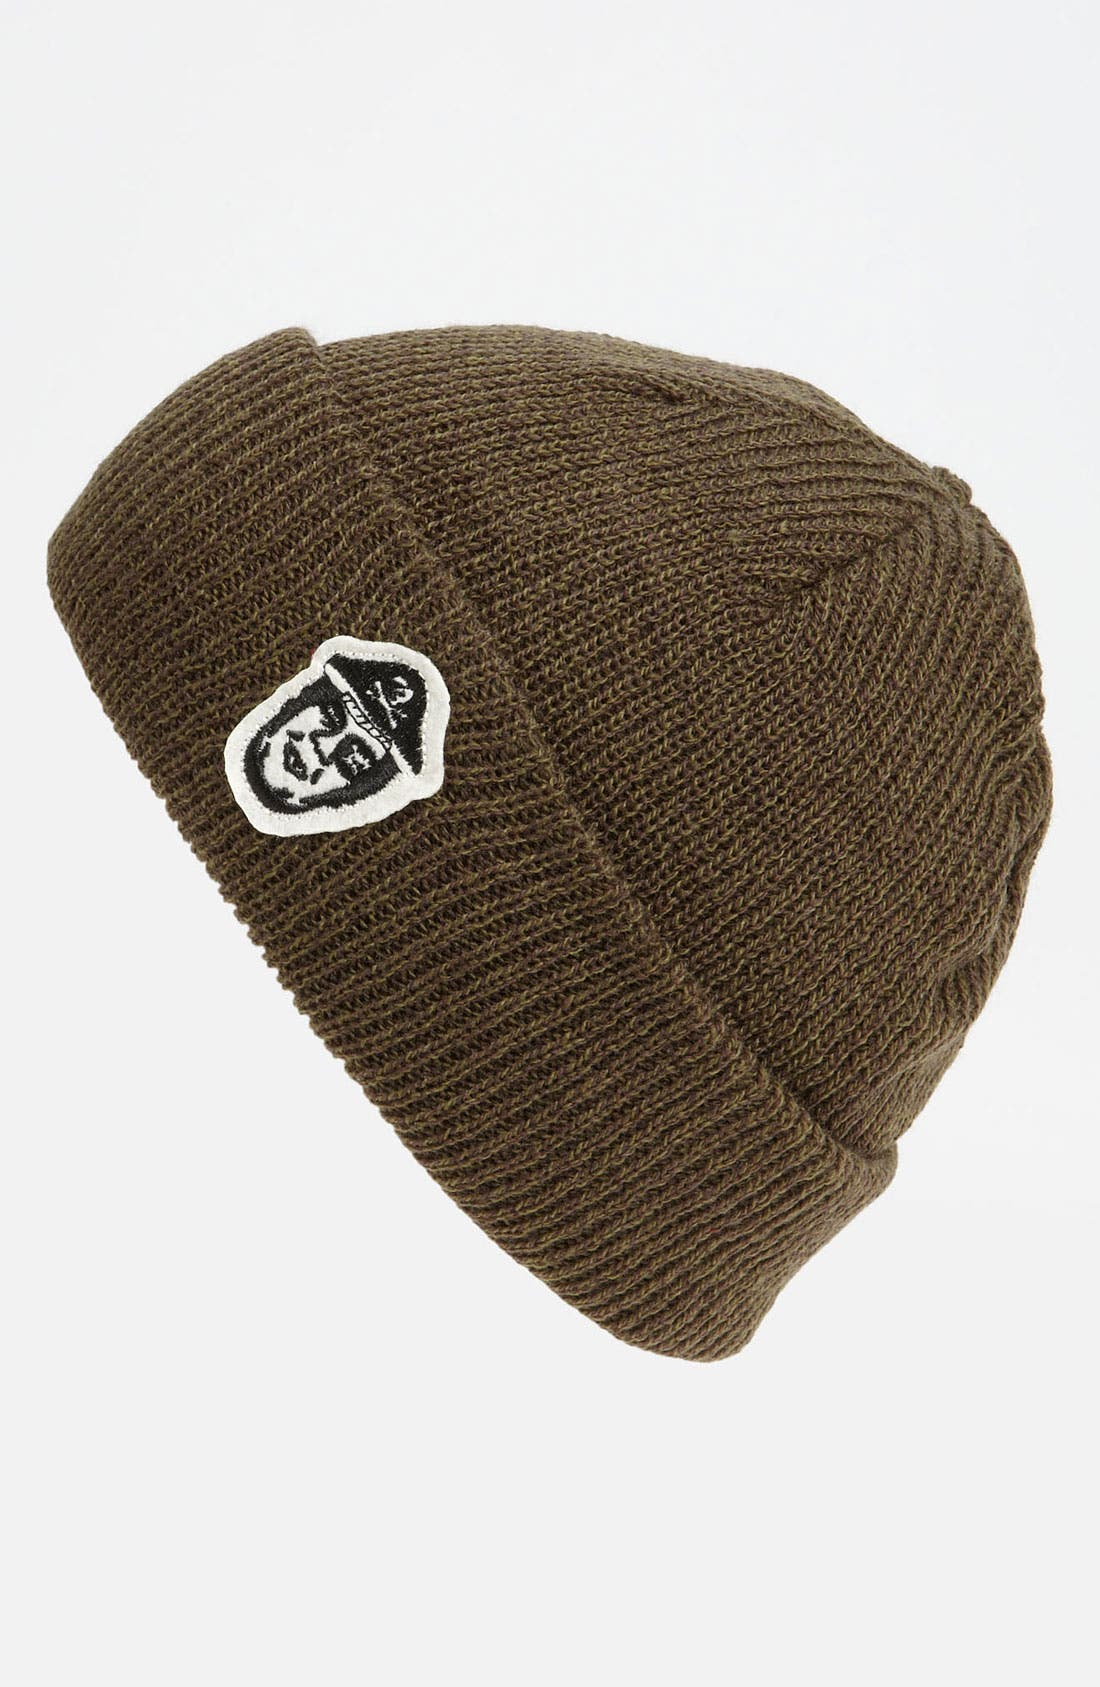 Alternate Image 1 Selected - Obey 'Avast' Knit Cap